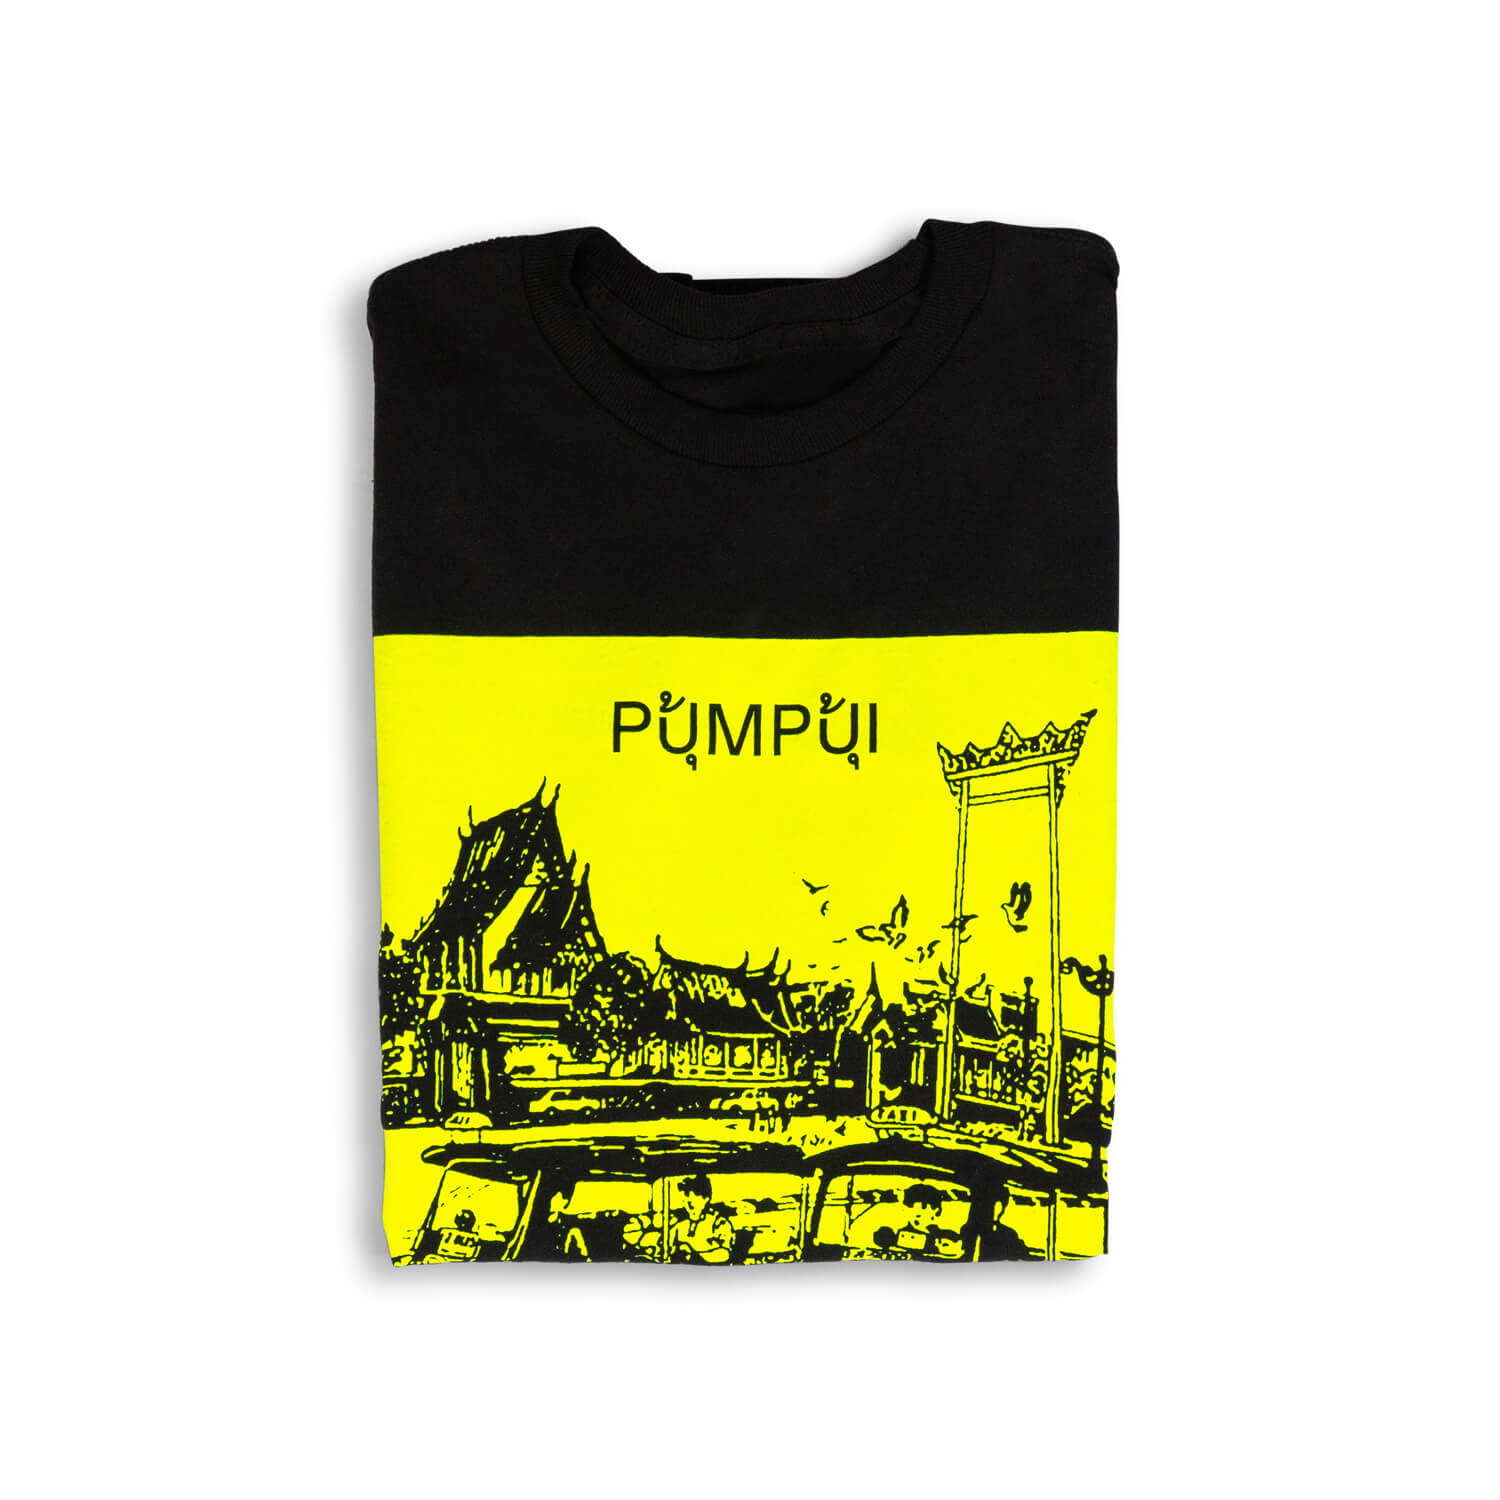 Pumpui T-Shirt (Black/Neon Yellow)